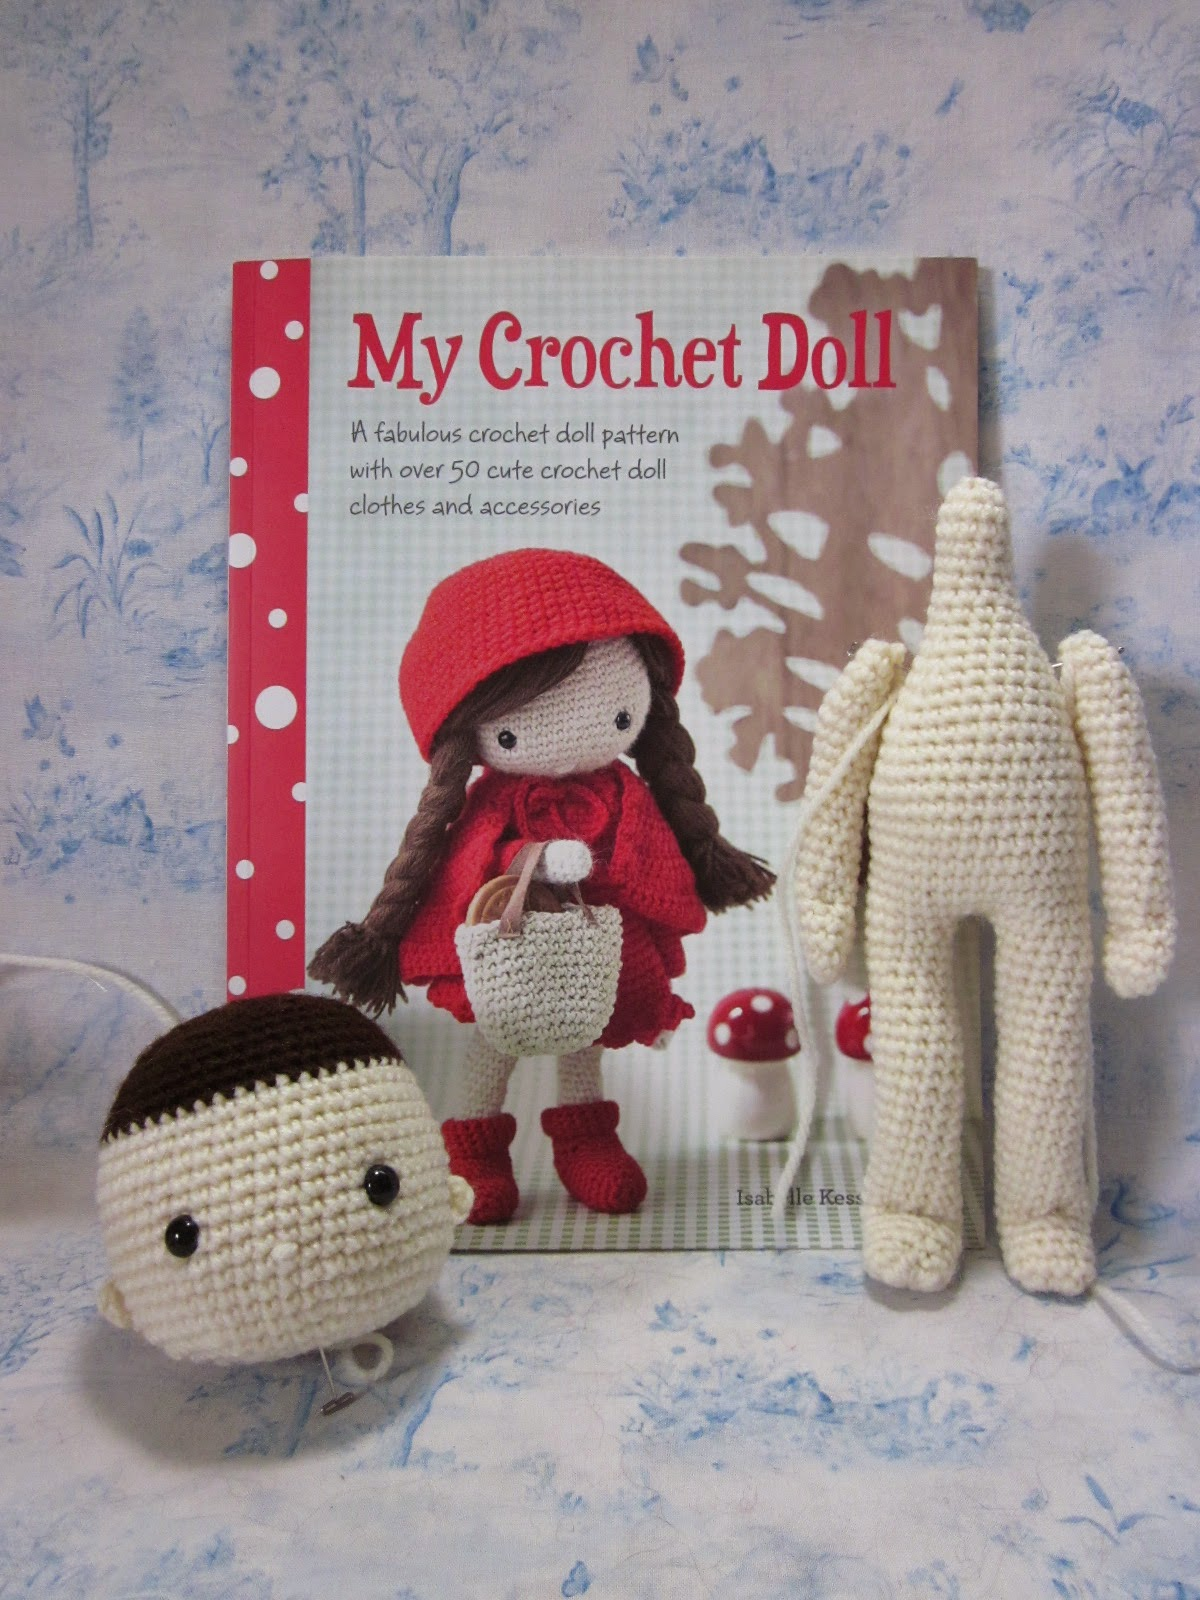 By Hook, By Hand: My Crochet Doll by Isabelle Kessedjian